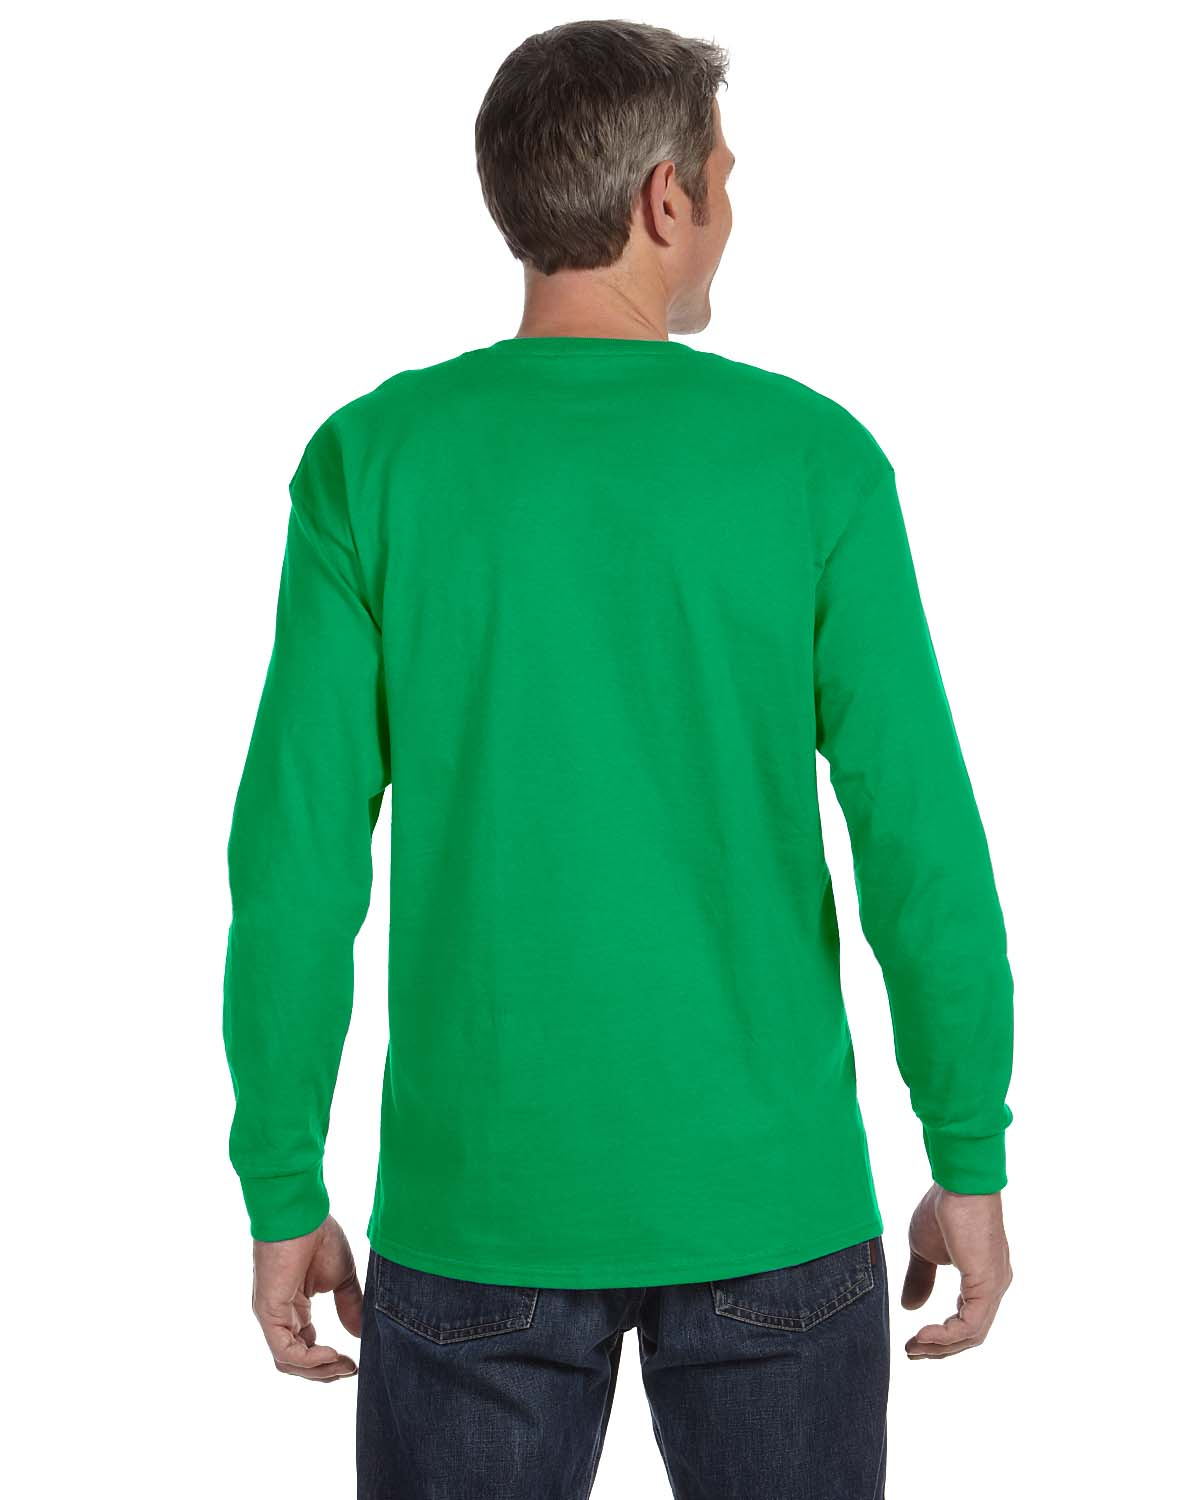 Gildan-Mens-T-Shirt-Long-Sleeve-Heavy-Cotton-5-3-oz-S-XL-R-G540-5400 thumbnail 29